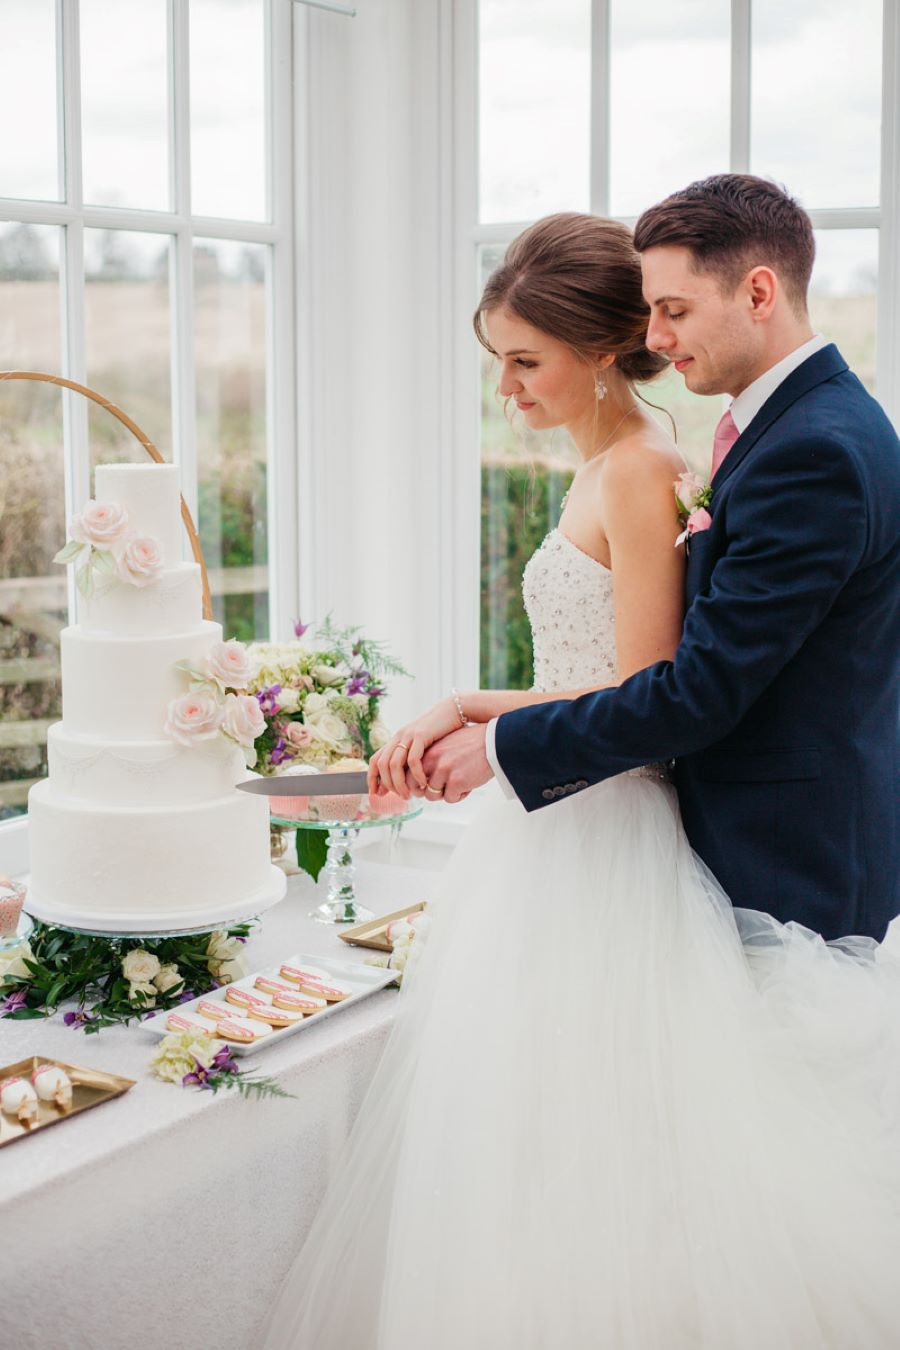 Light and romance with natural blush tones - wedding ideas from Downham Hall. Photographer credit Magical Moments Photography (44)